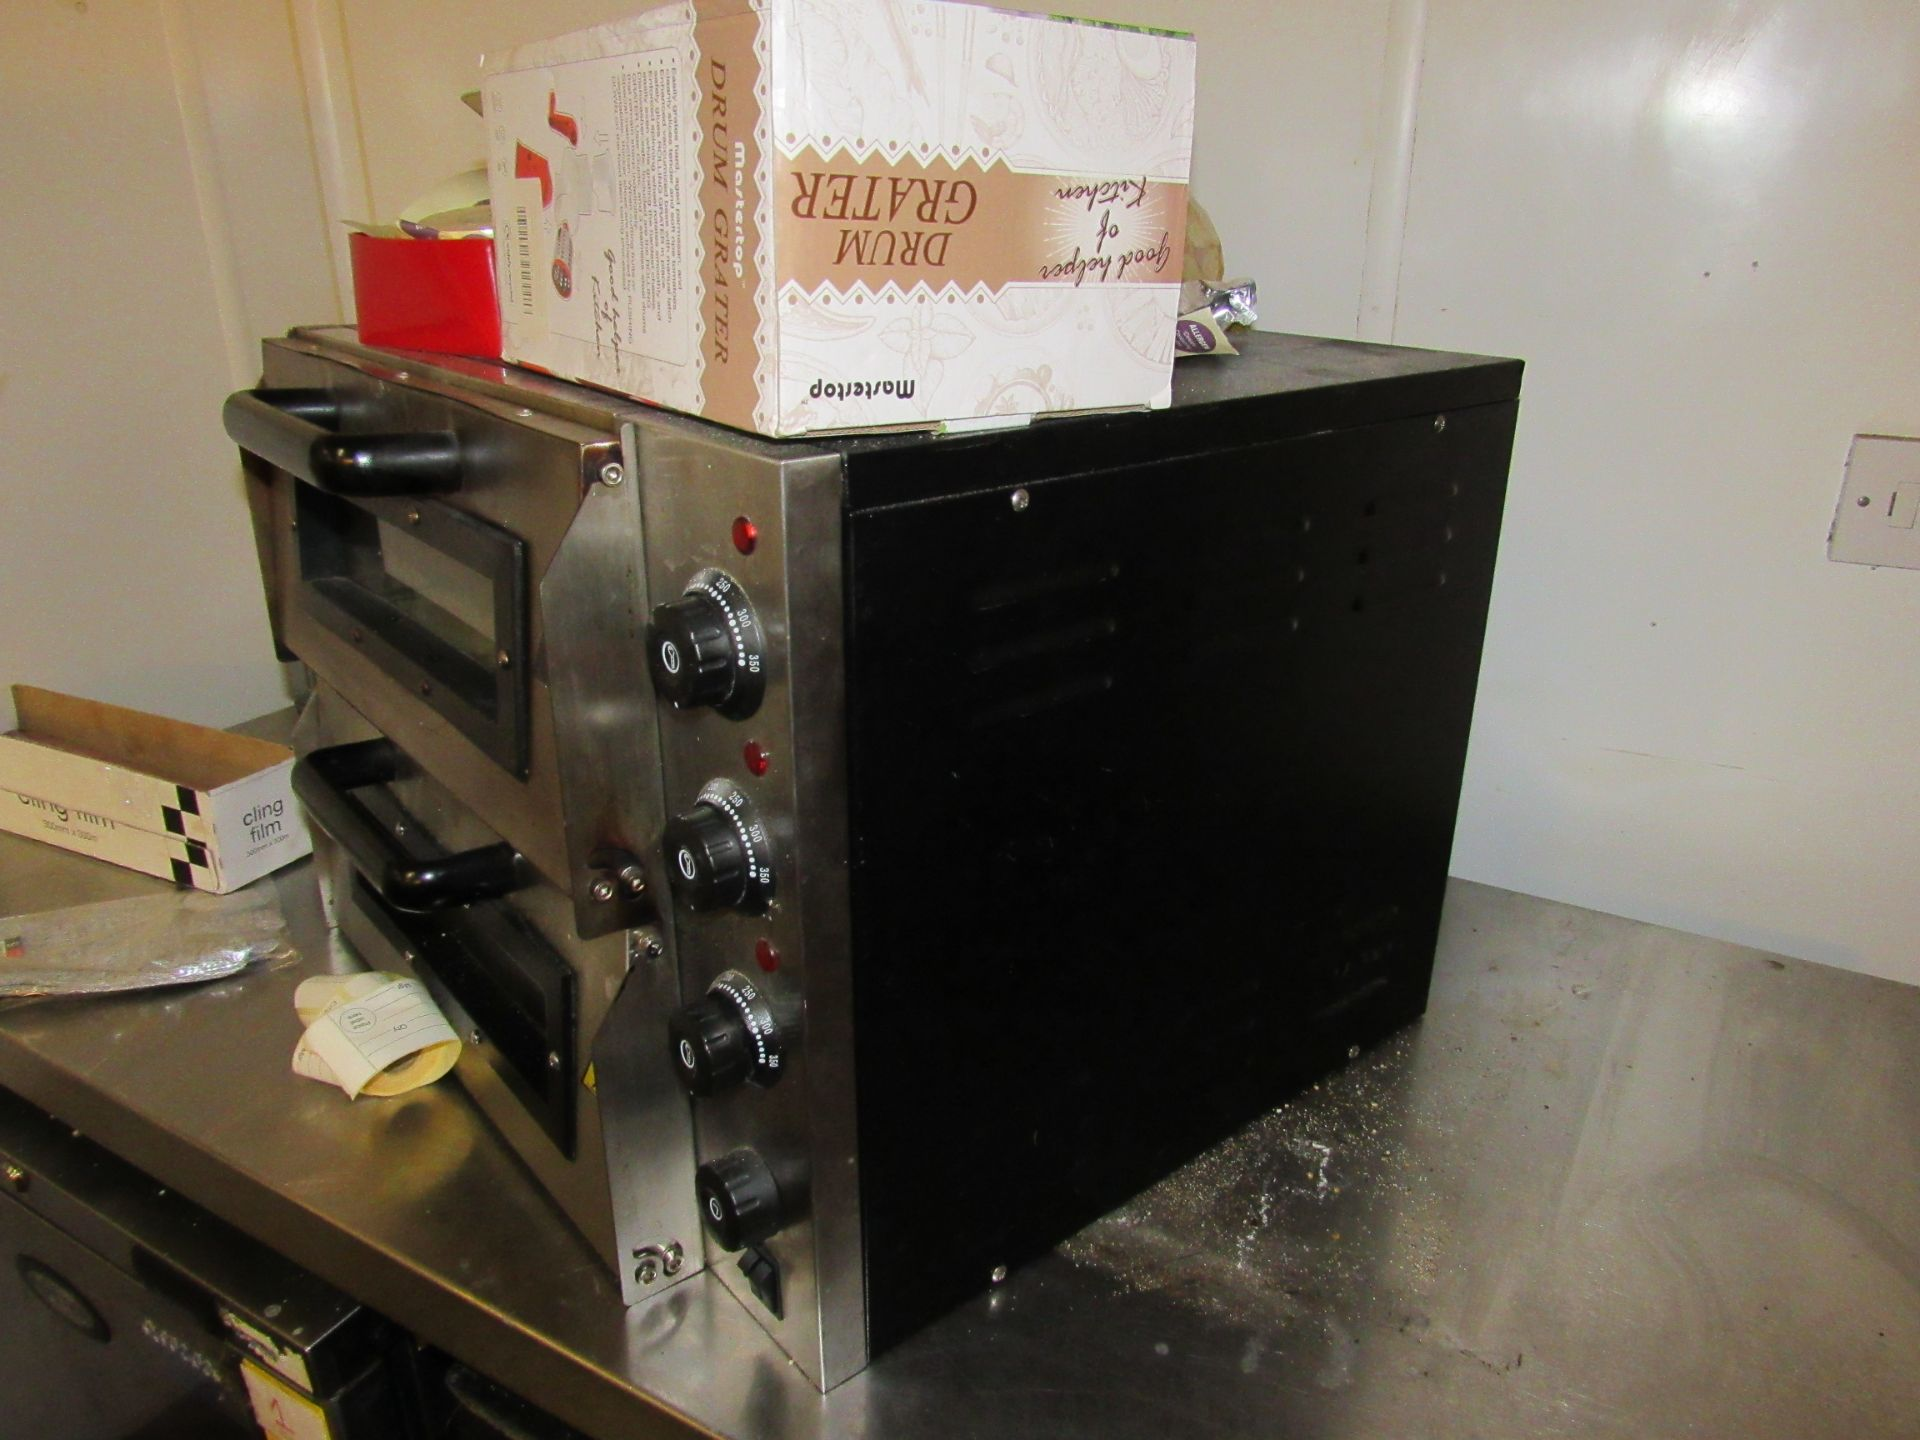 Electric Pizza Oven, P2PT 560x566x400mm - Image 2 of 5